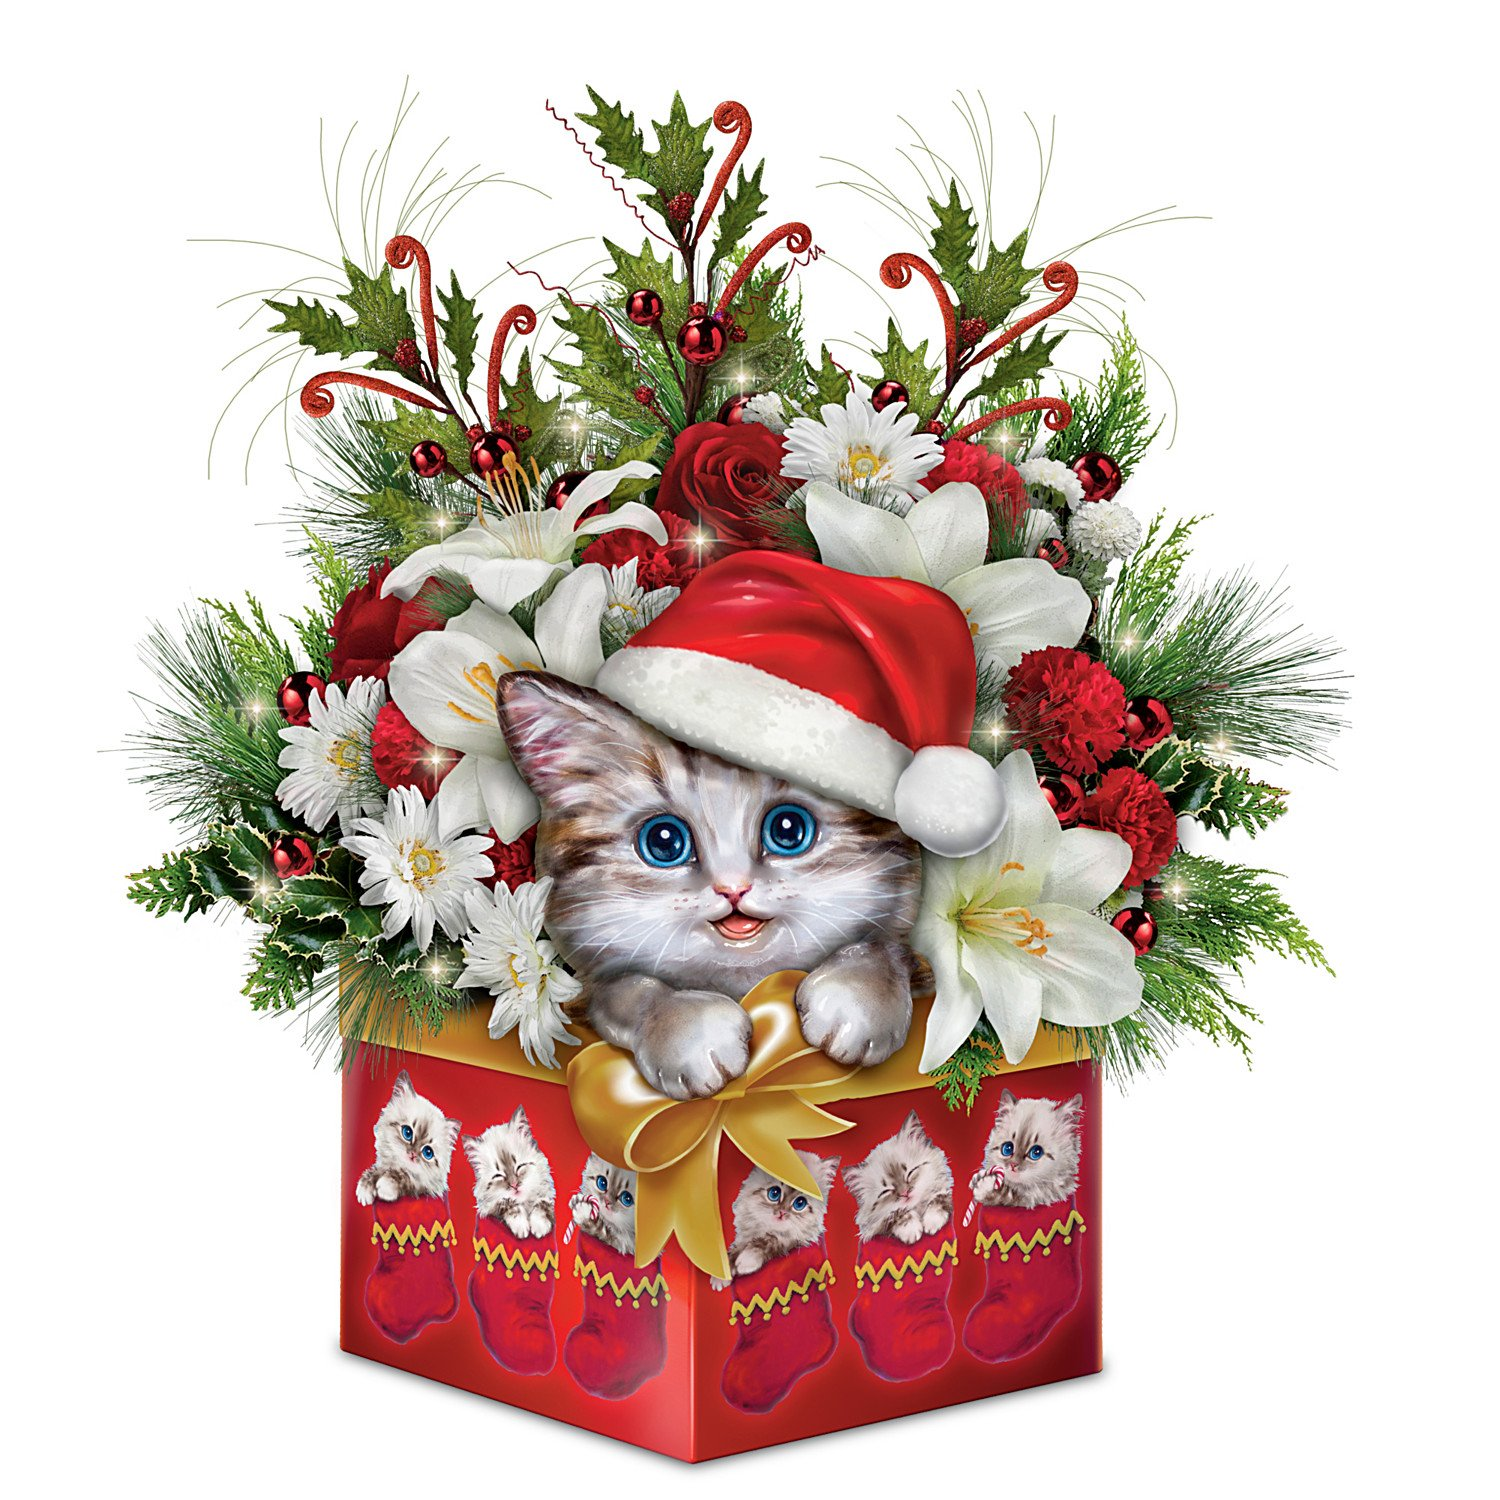 Kayomi Harai Cat Art Christmas Floral Centerpiece Decoration: Bradford Exchange by The Bradford Exchange